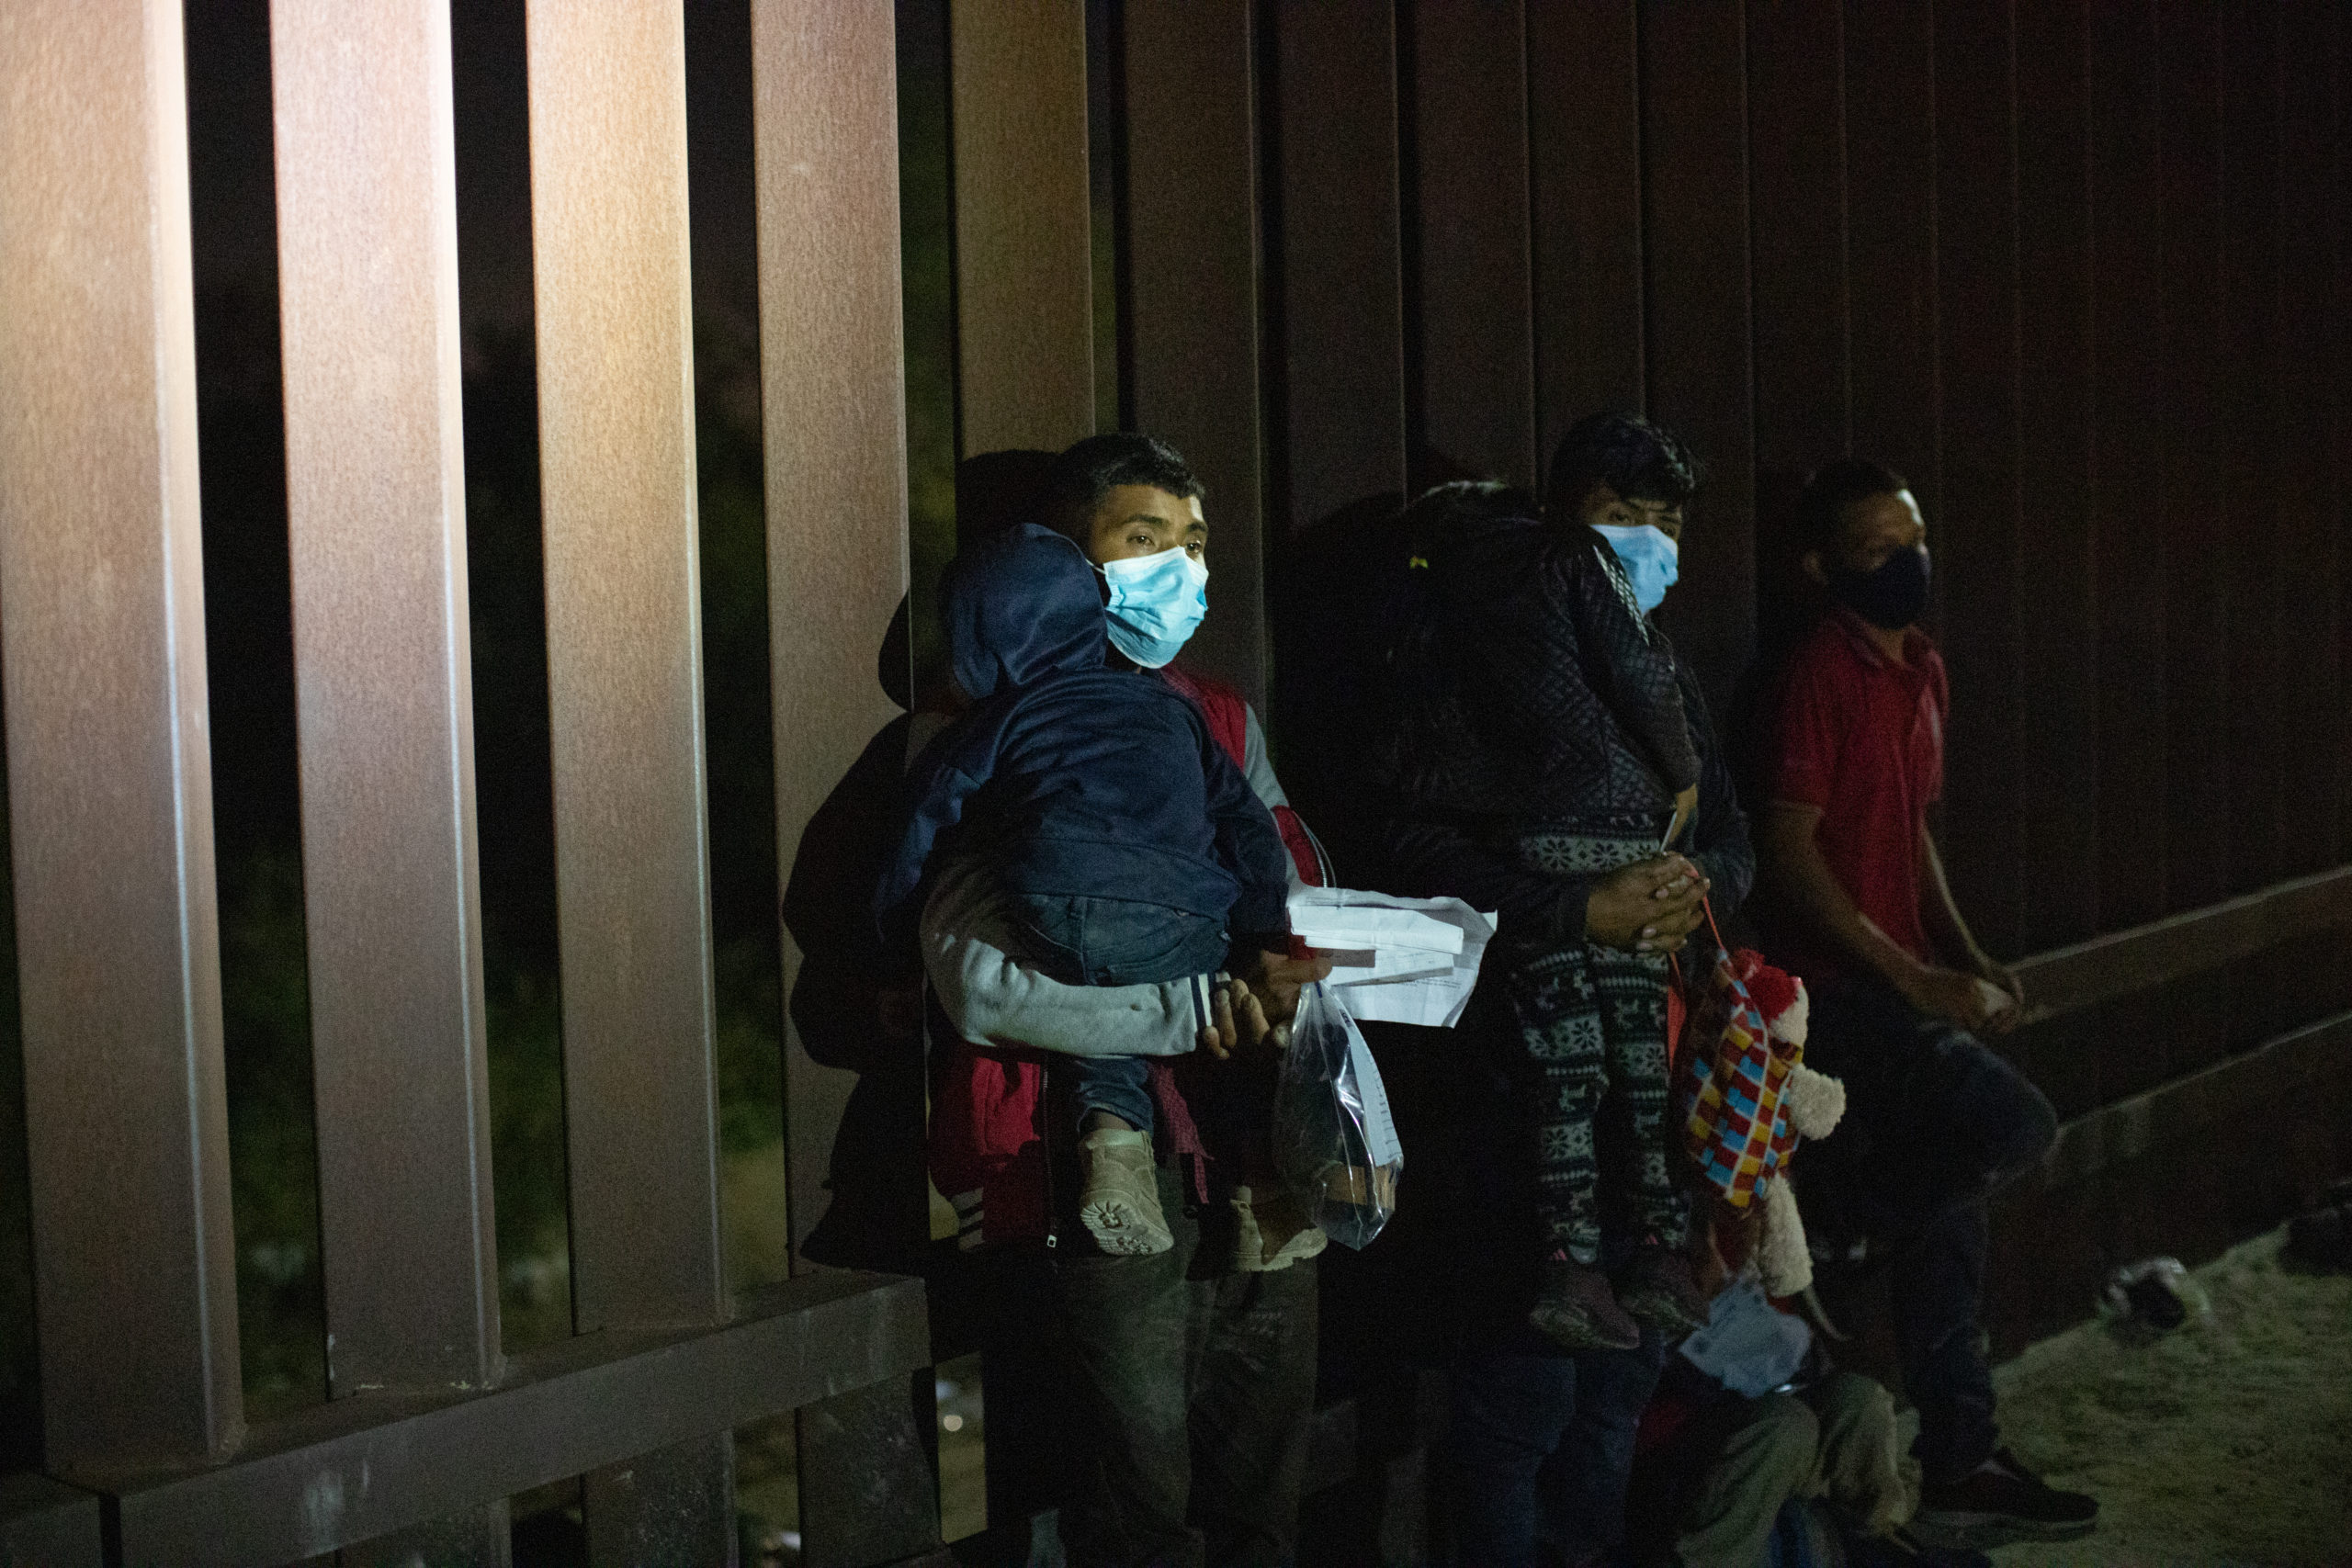 Migrants waited on a levee into the early morning to be processed by border officials after illegally entering the U.S. near the Hidalgo Point of Entry in Hidalgo, Texas, on. August 8, 2021. (Kaylee Greenlee - Daily Caller News Foundation)